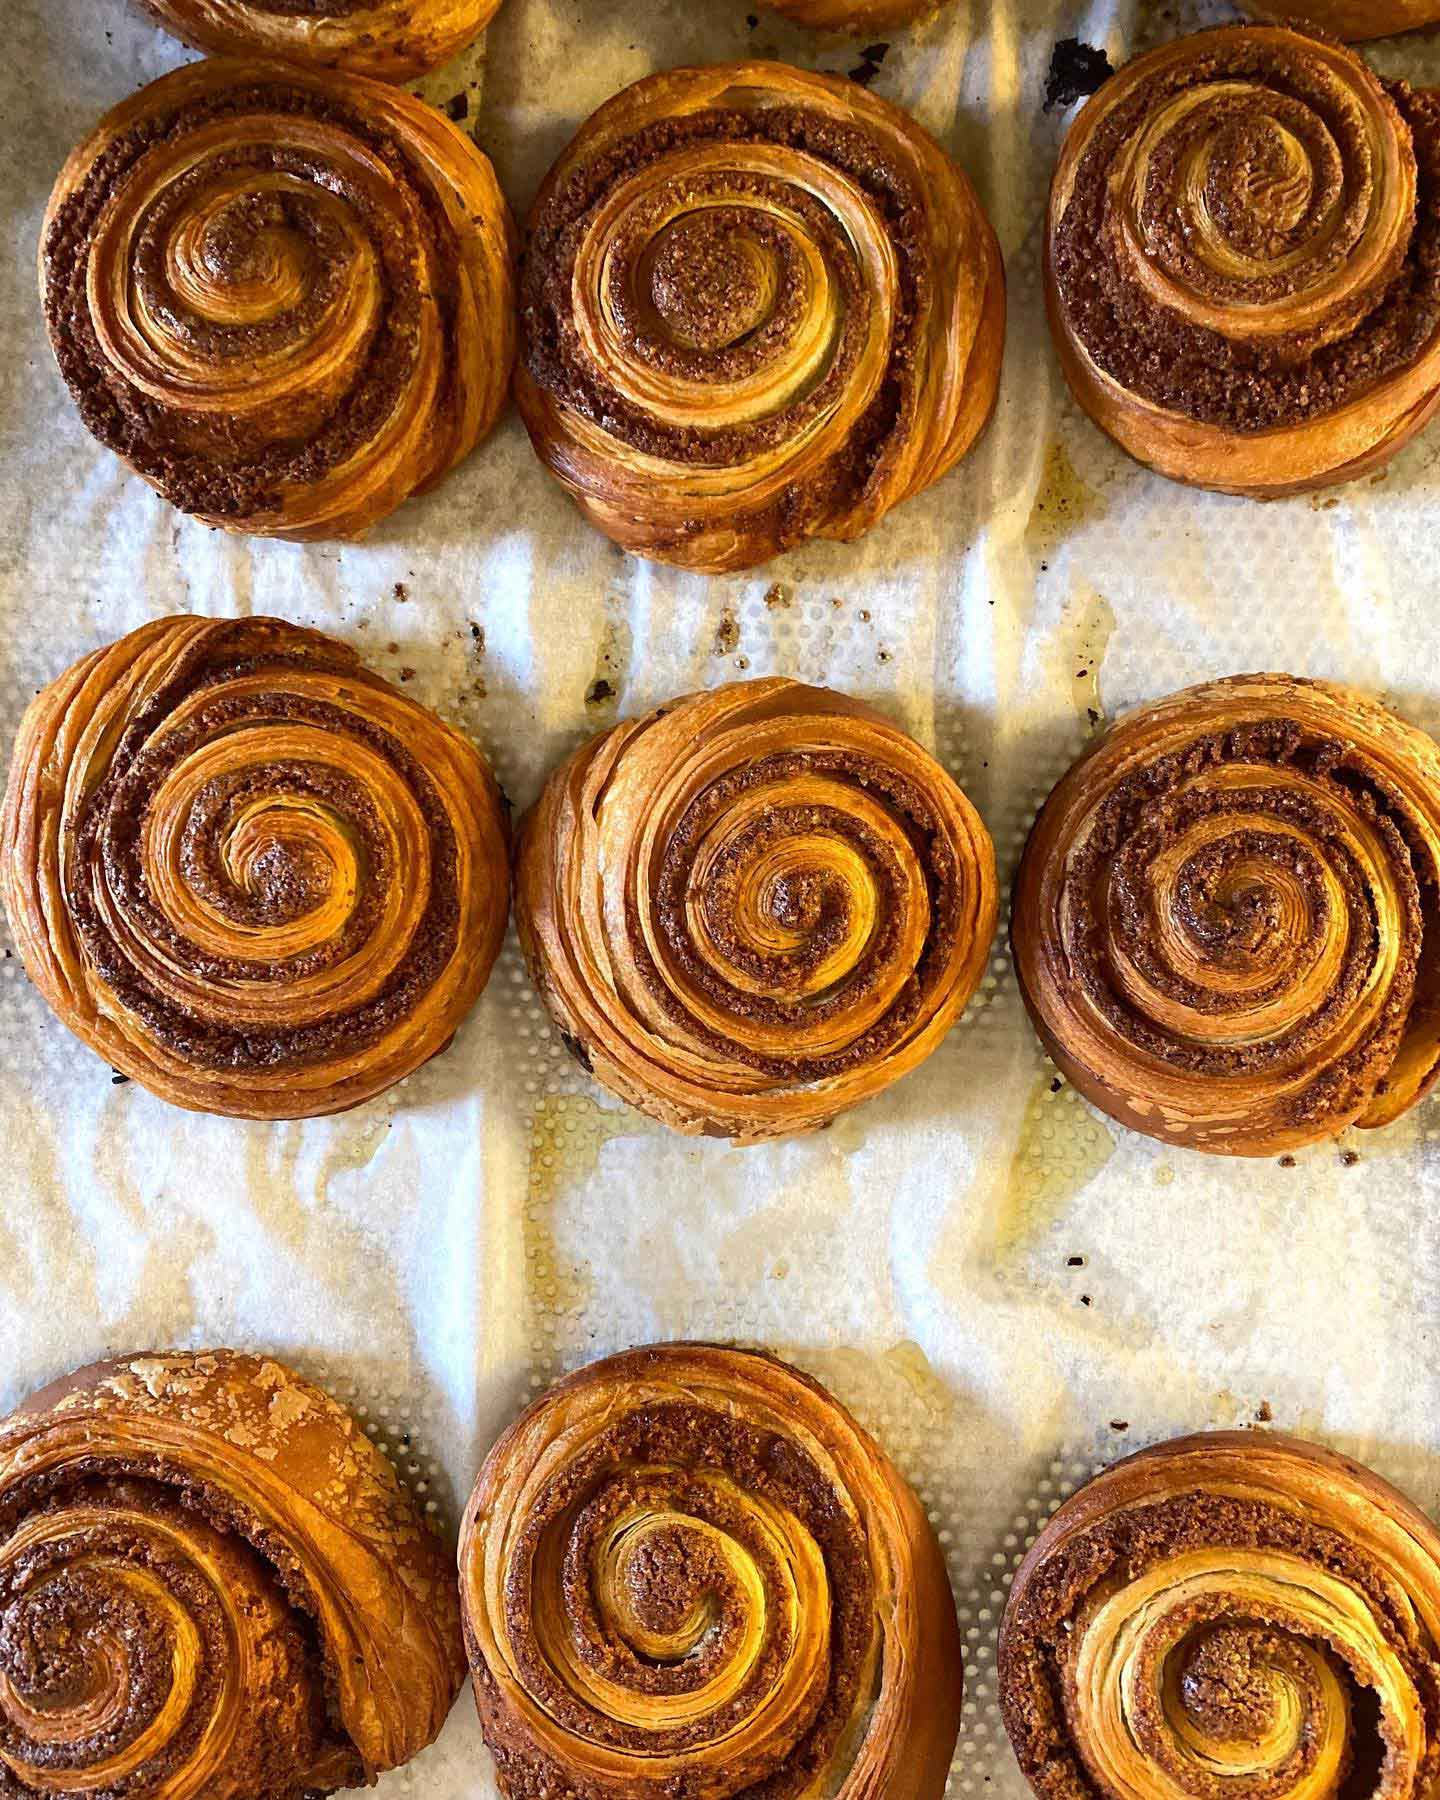 French cinamon rolls baked by Vincent